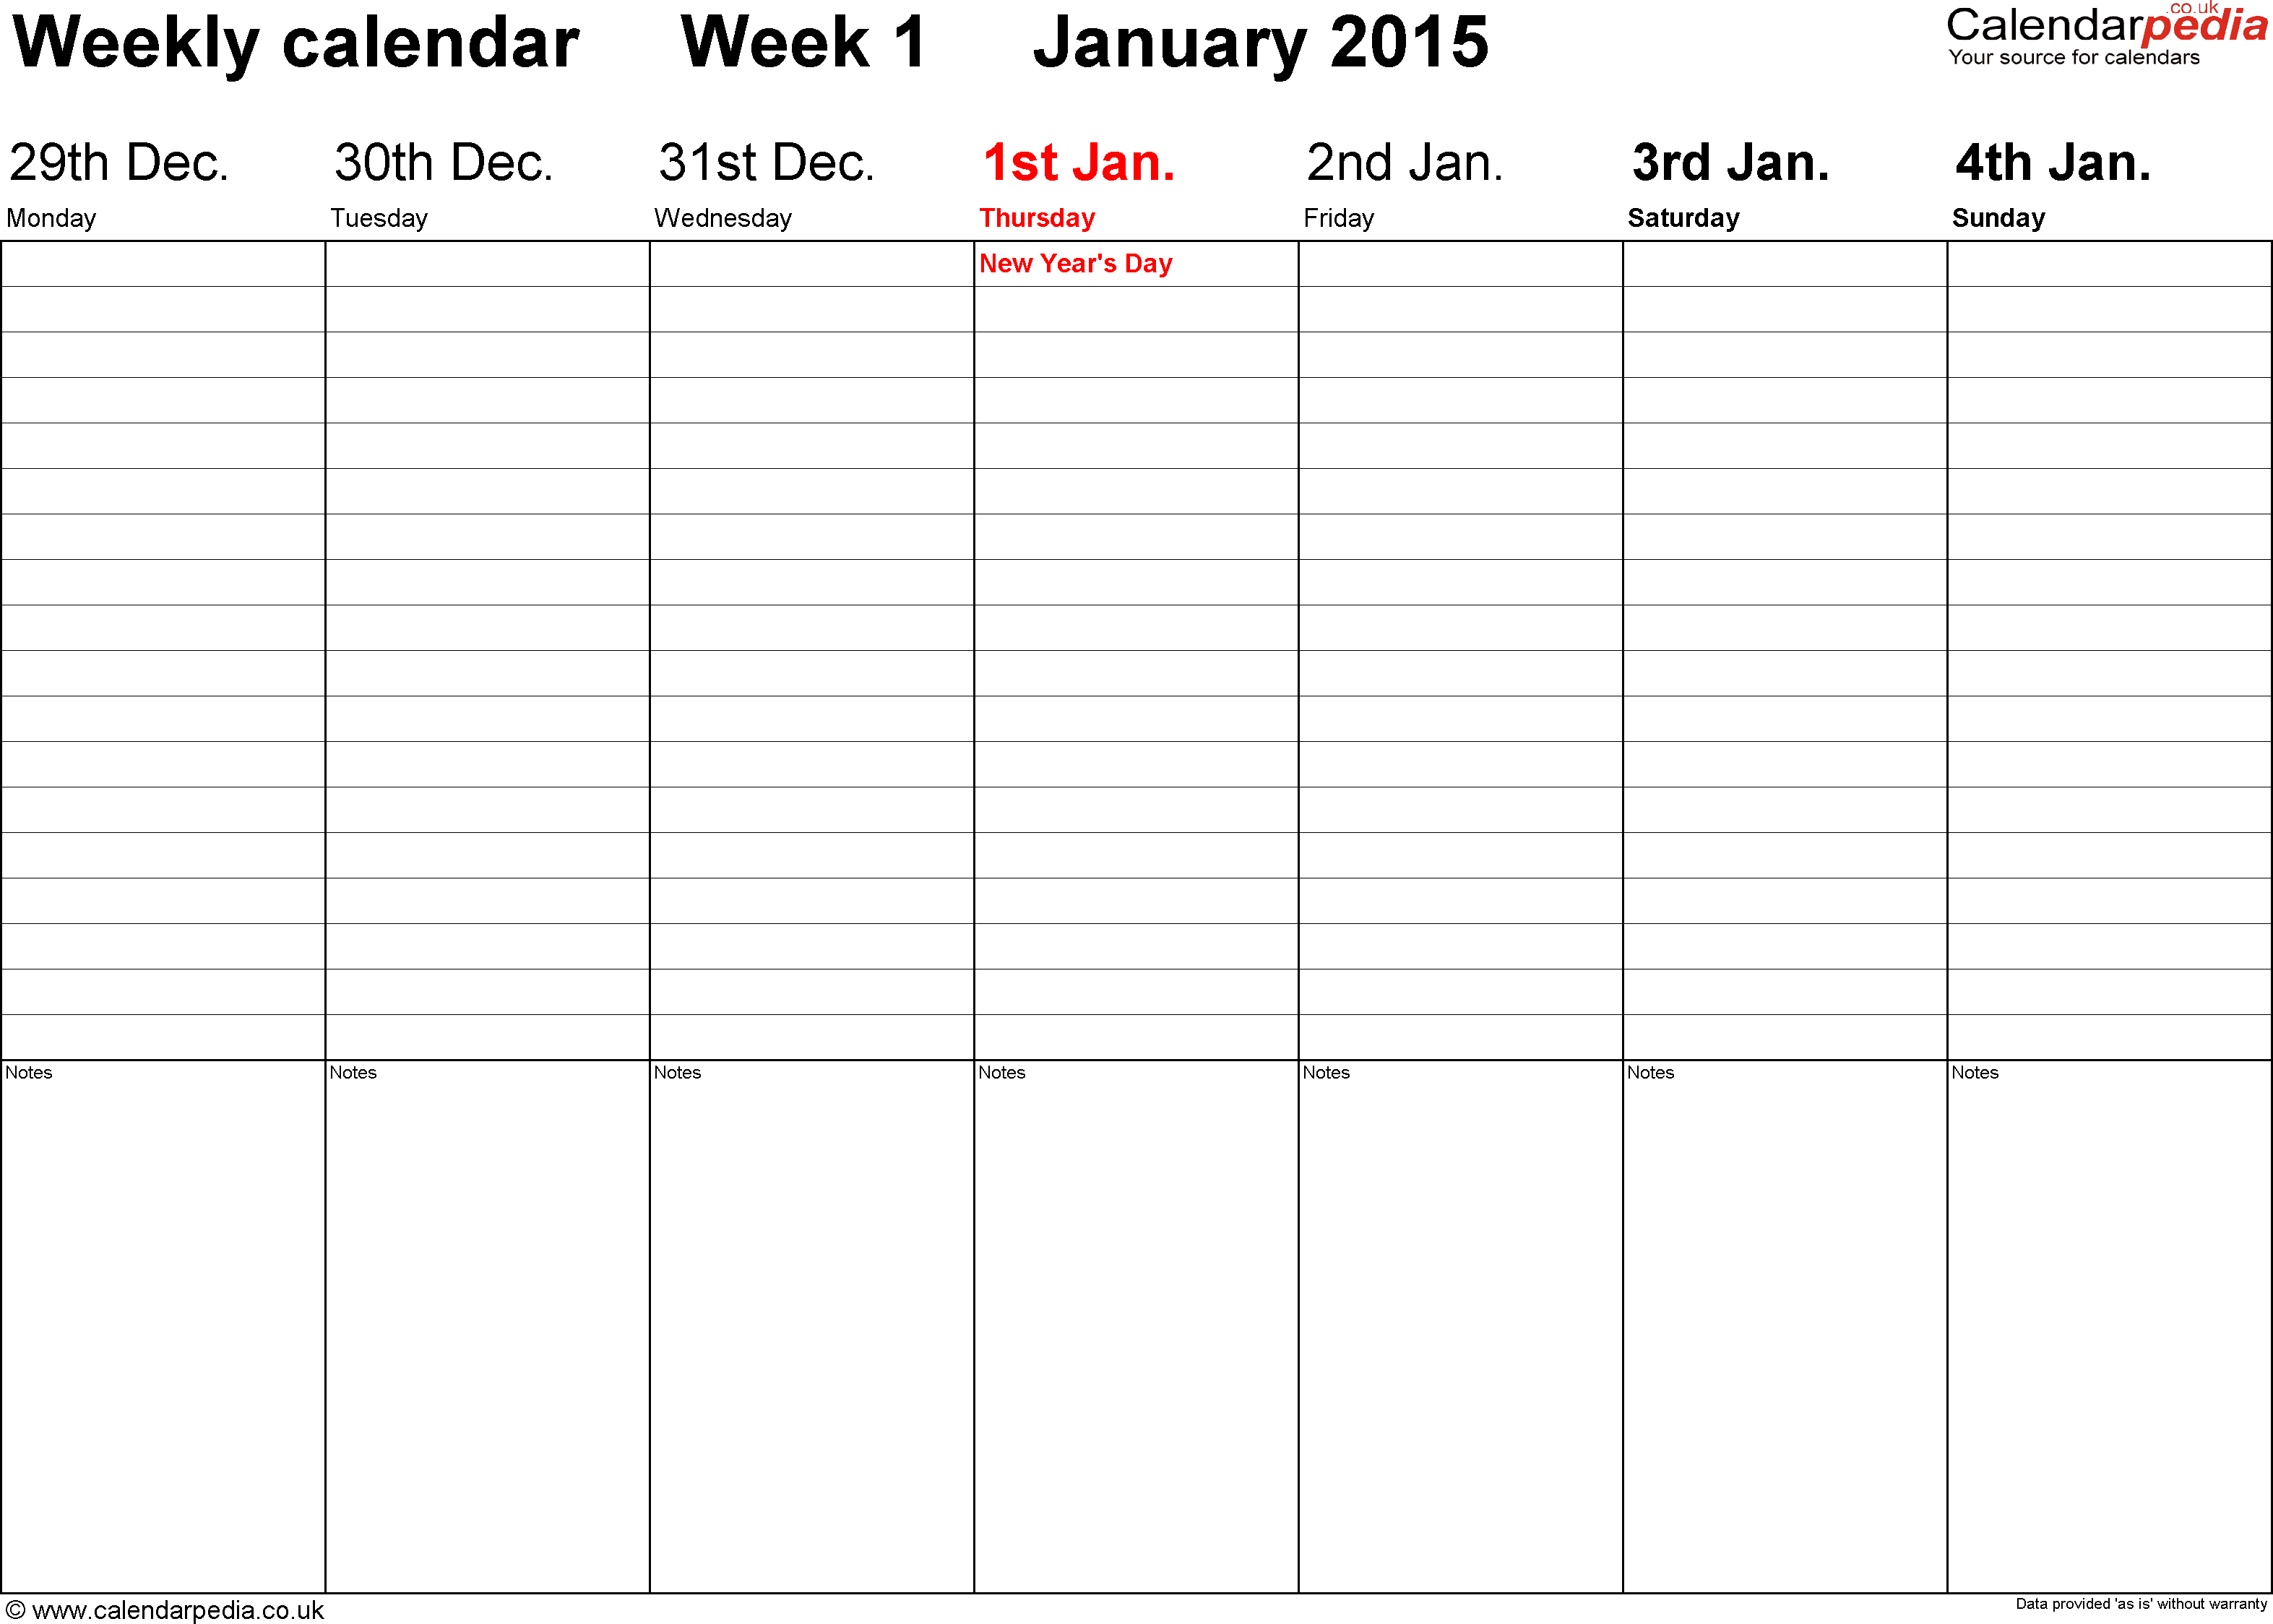 Weekly Year Calendar Template : Weekly calendar uk free printable templates for word